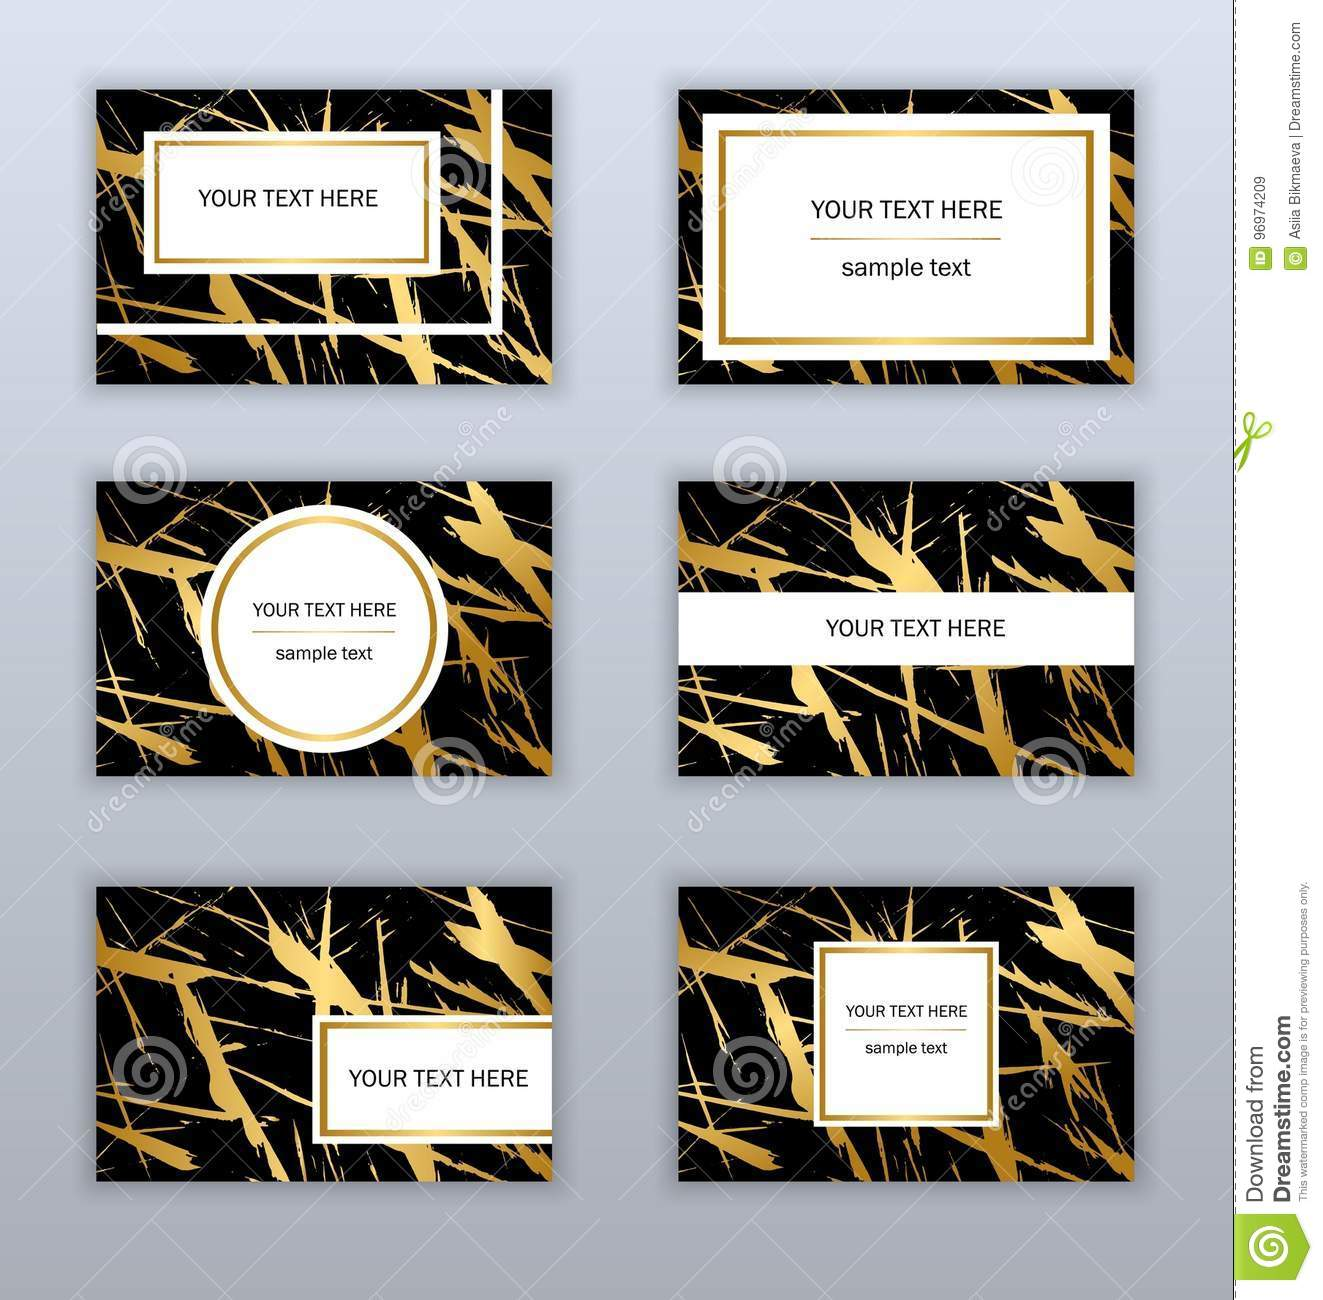 Set Of White Black And Gold Business Cards Templates Modern Stock